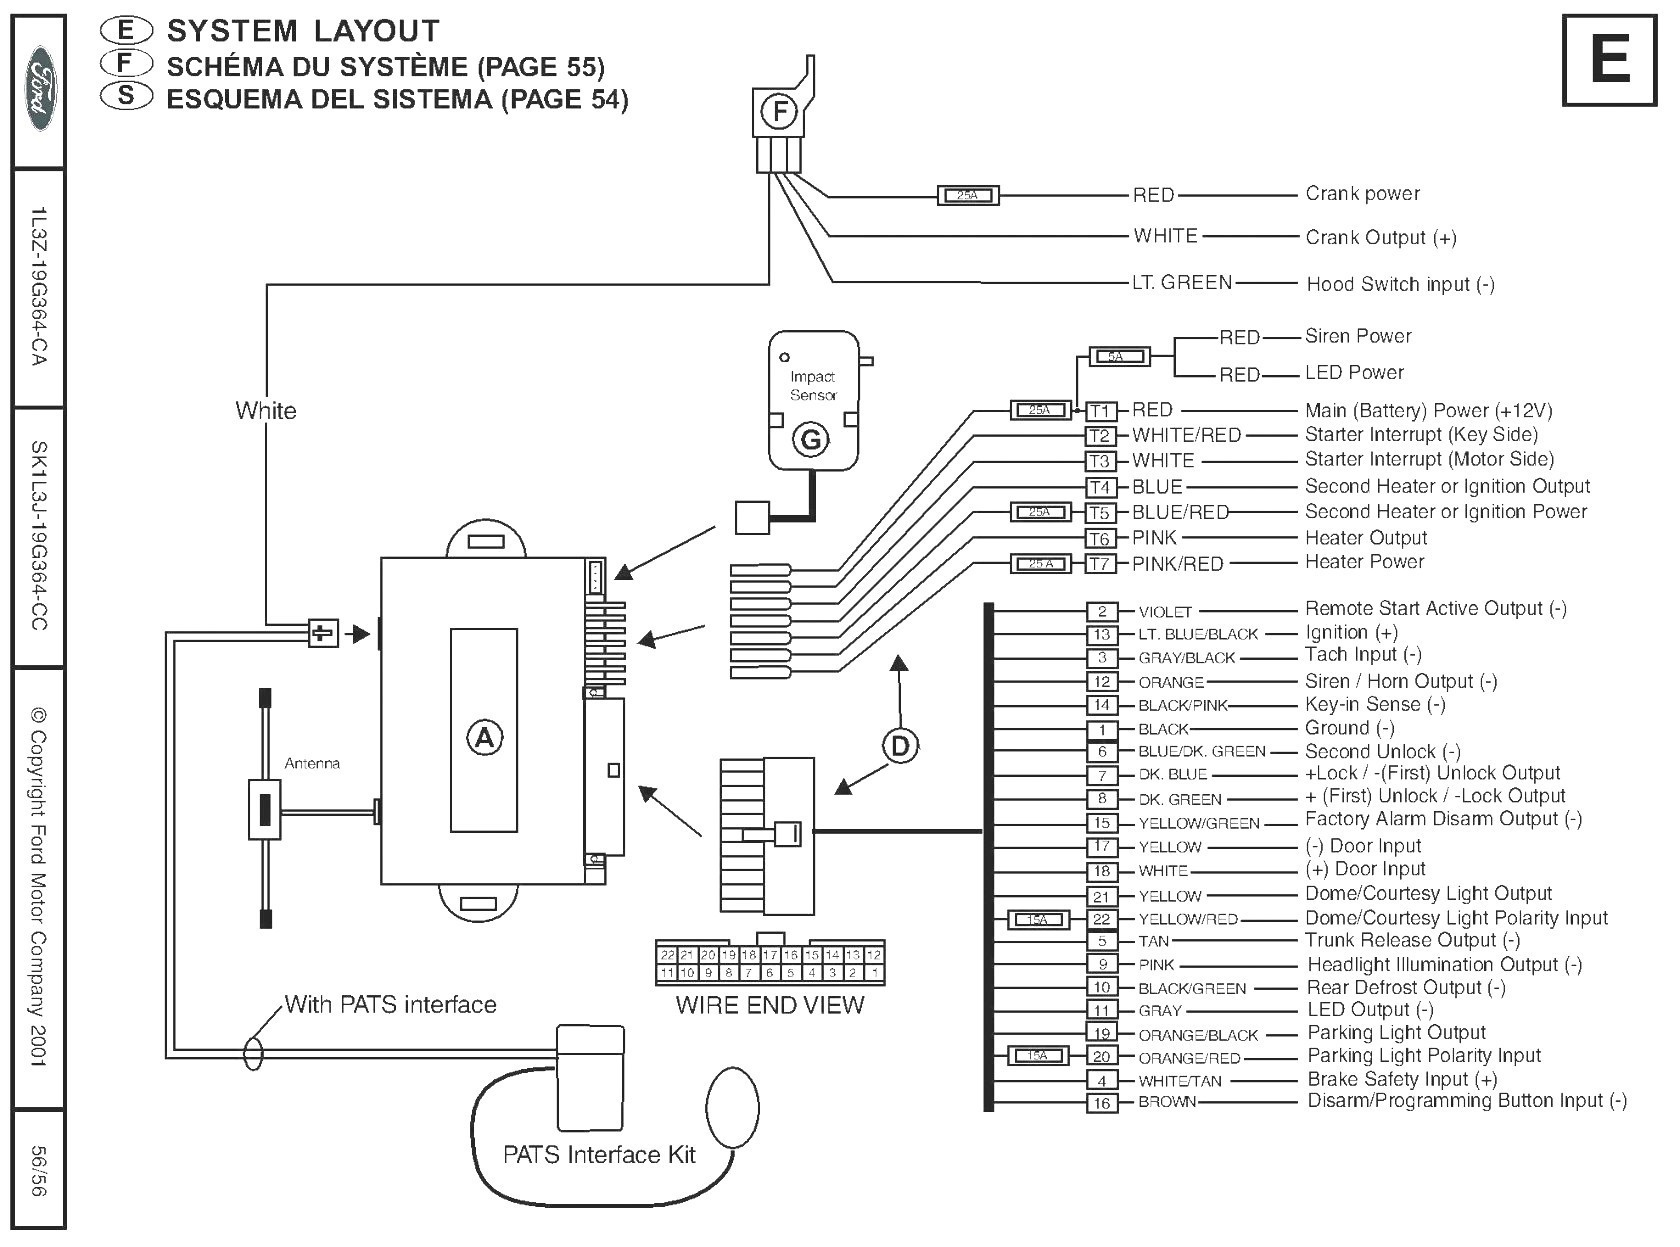 vita spa wiring diagram vita spa wiring schematic vita spa l200 wiring diagram gallery